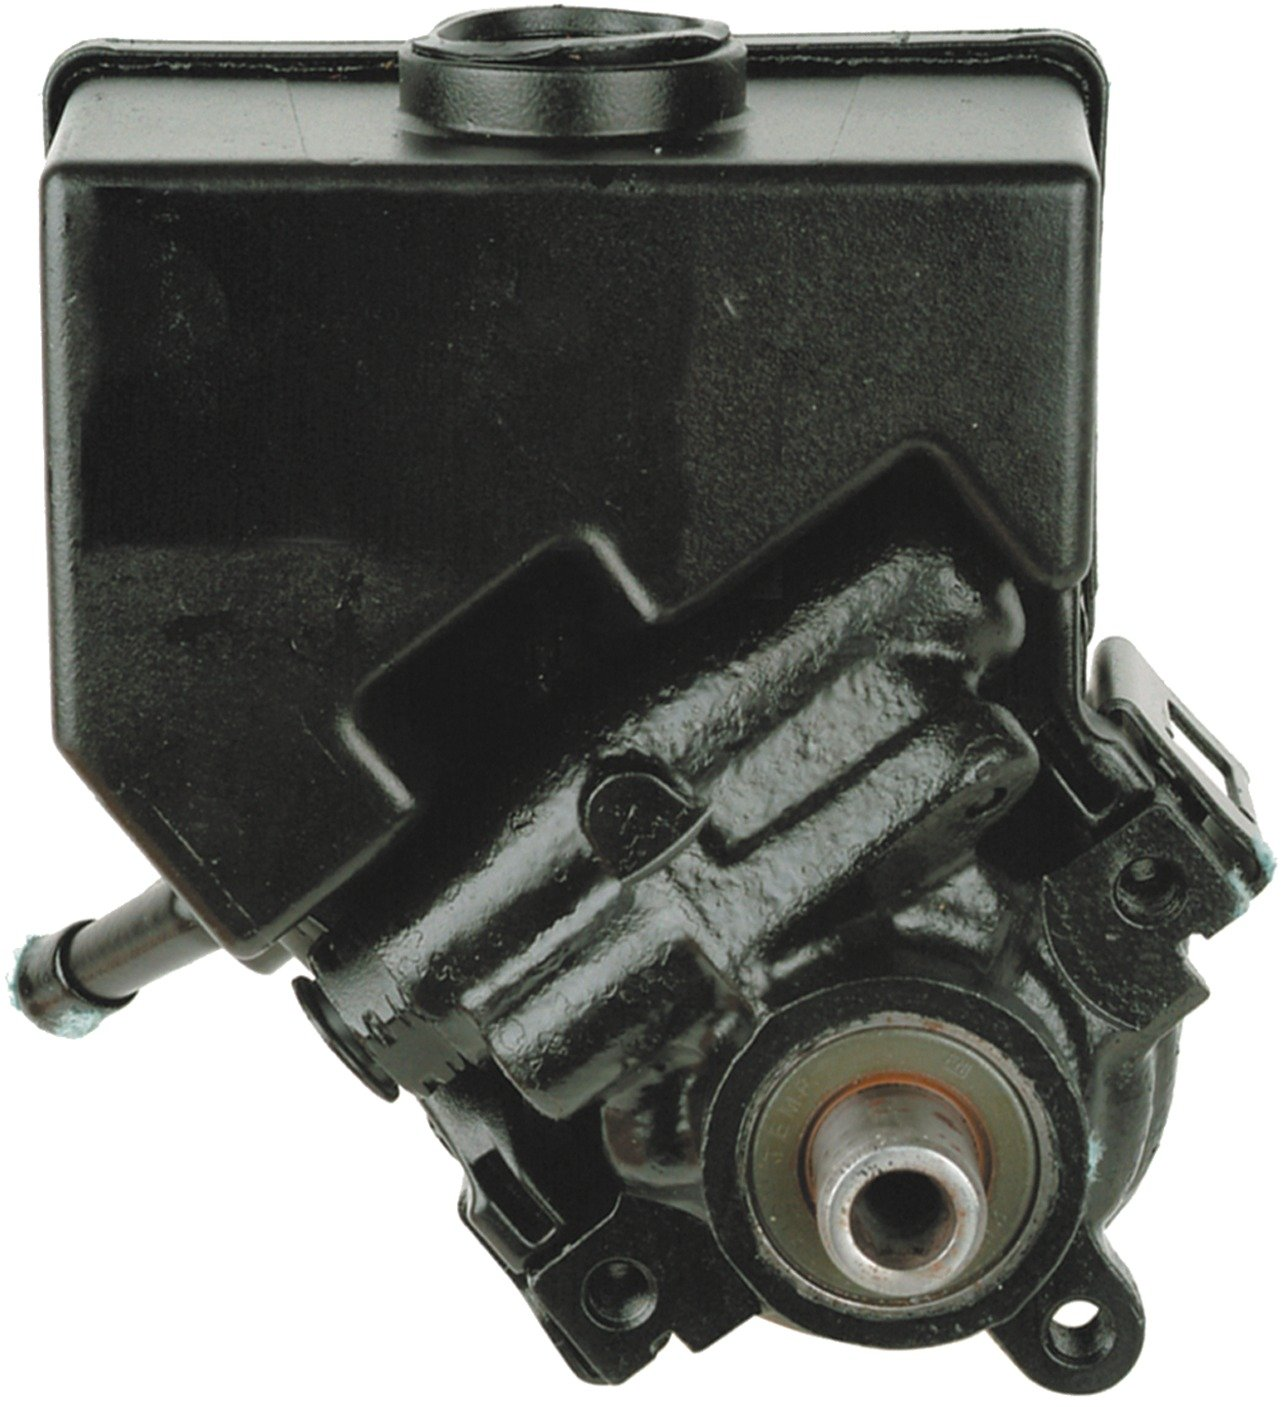 A1 Cardone 20-27532F Remanufactured Power Steering Pump with Reservoir